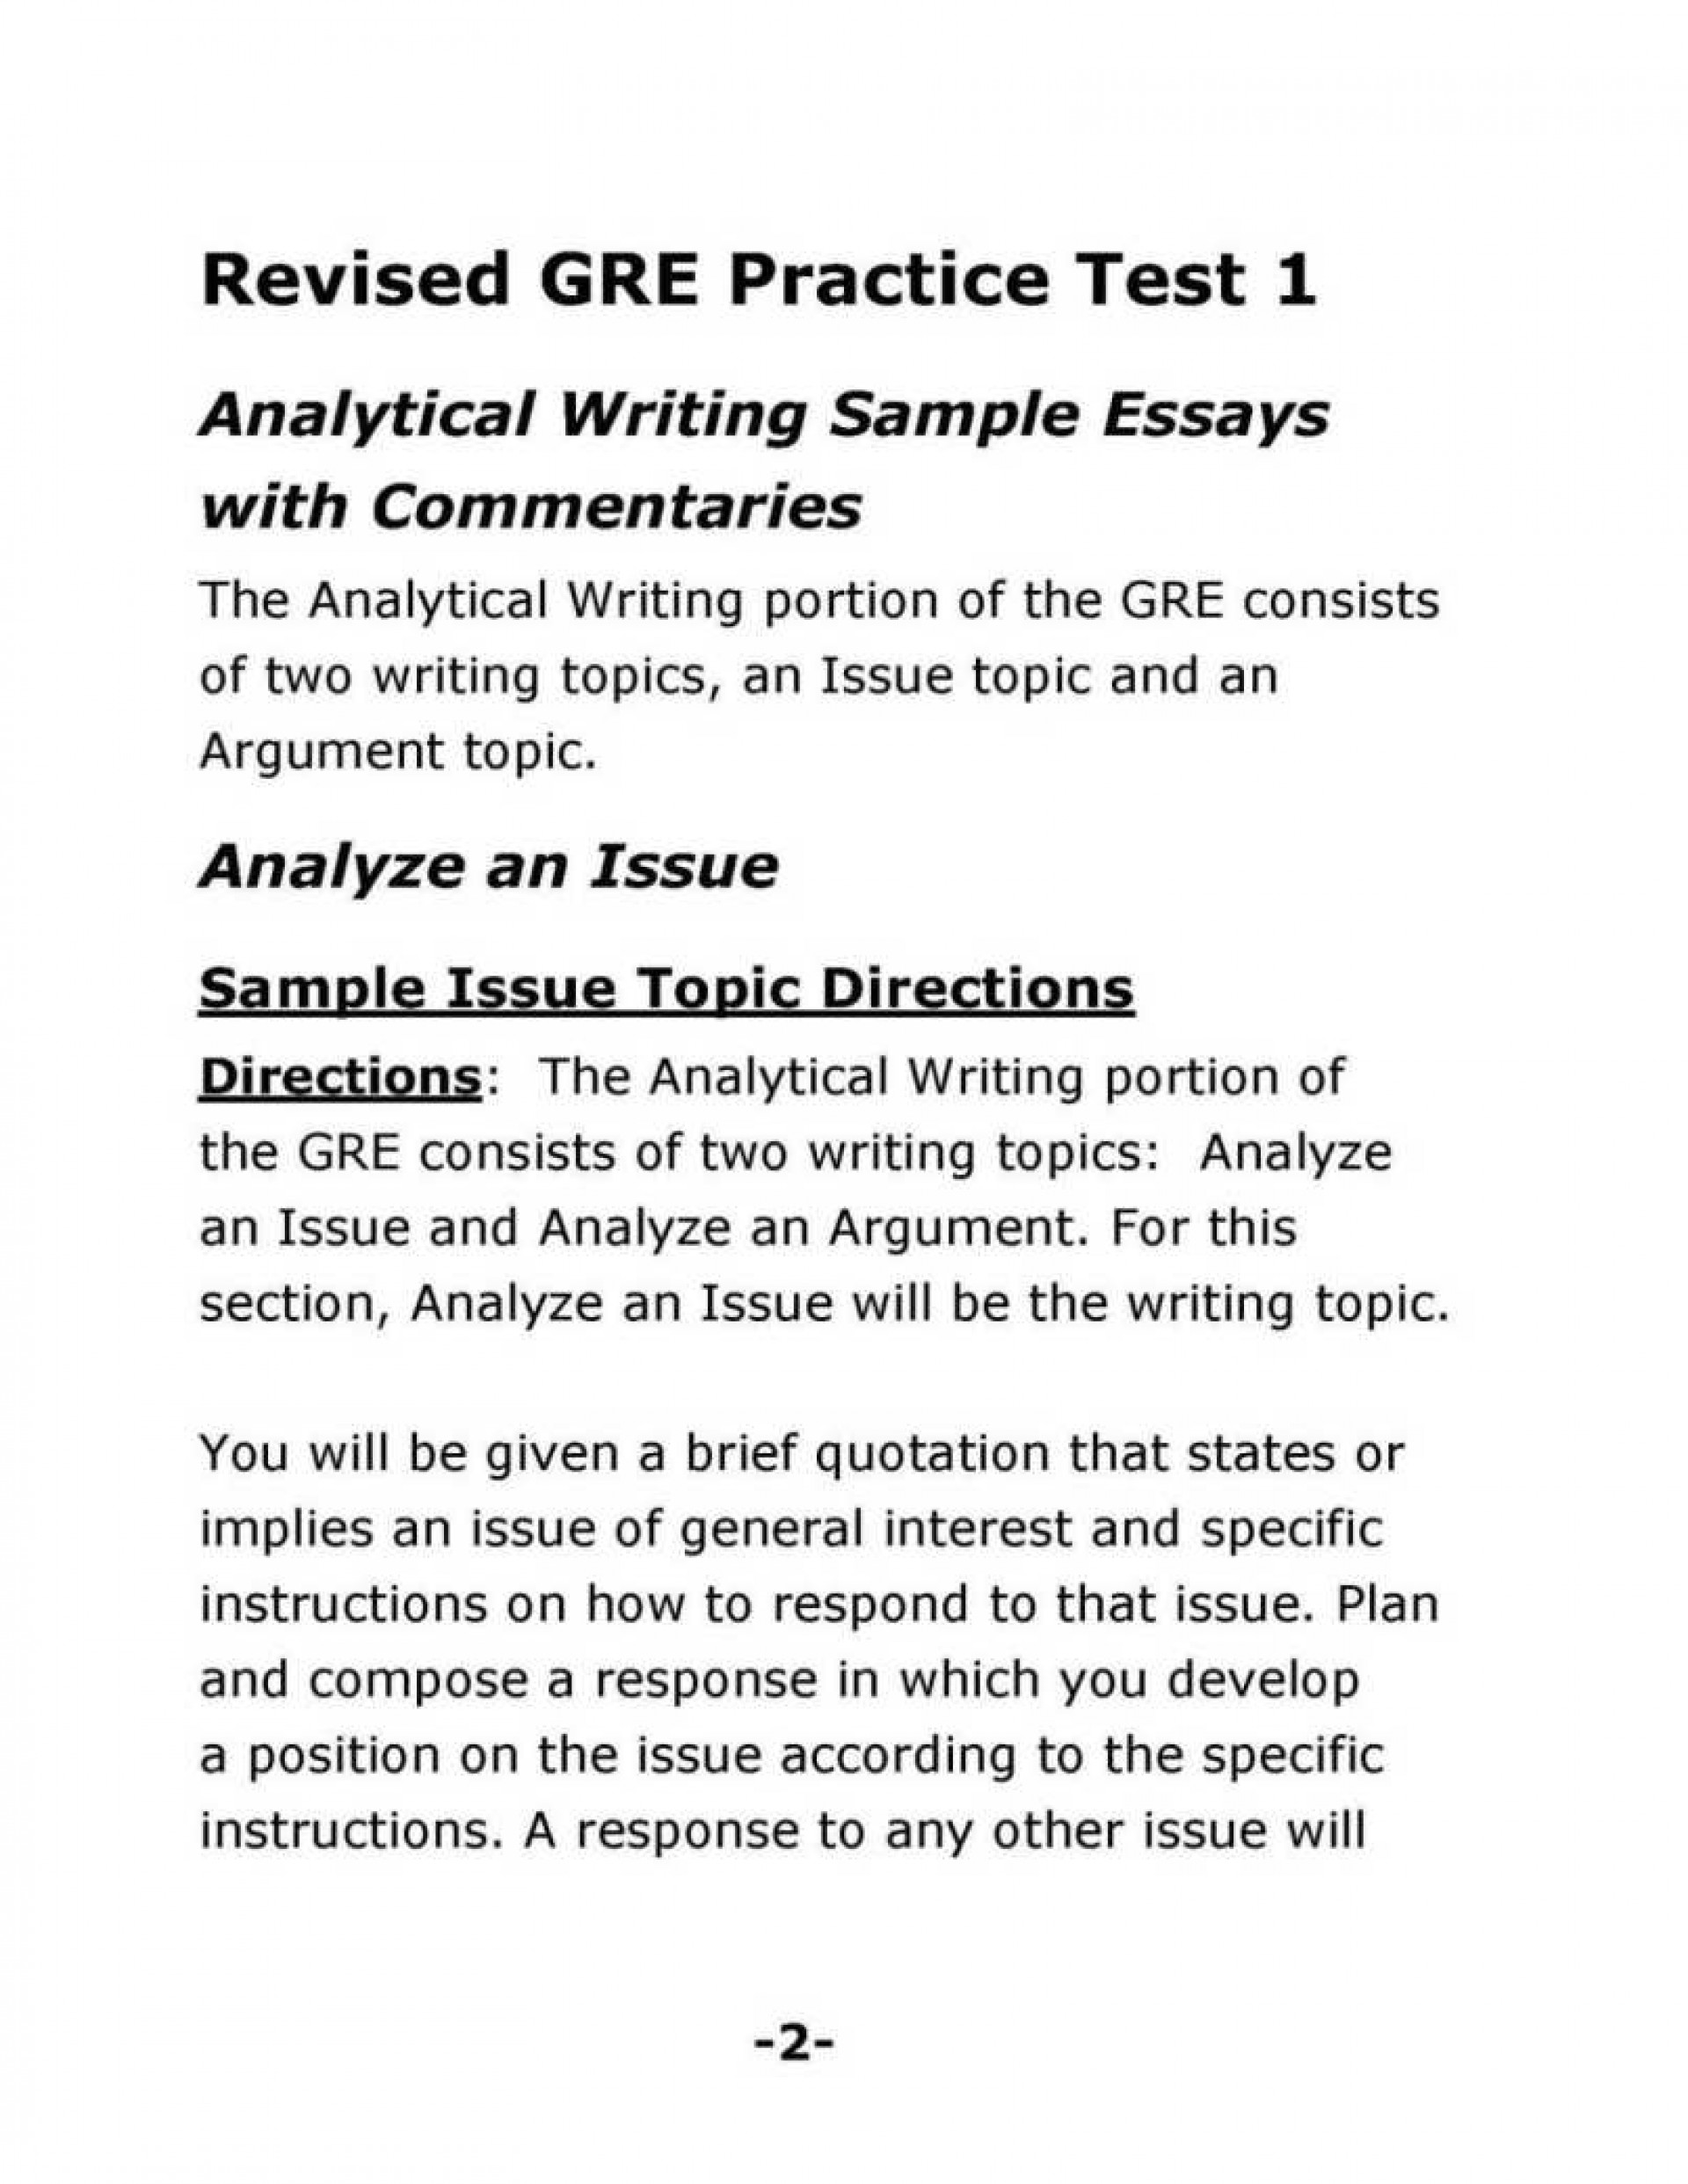 004 Essay Example Gre Argumentemplate Howo Write Formatted Resume Sampleest Papers With Soluti Samples Length Rhesus Monkey Questions Score Pool Prompt Frightening Argument Template 1920